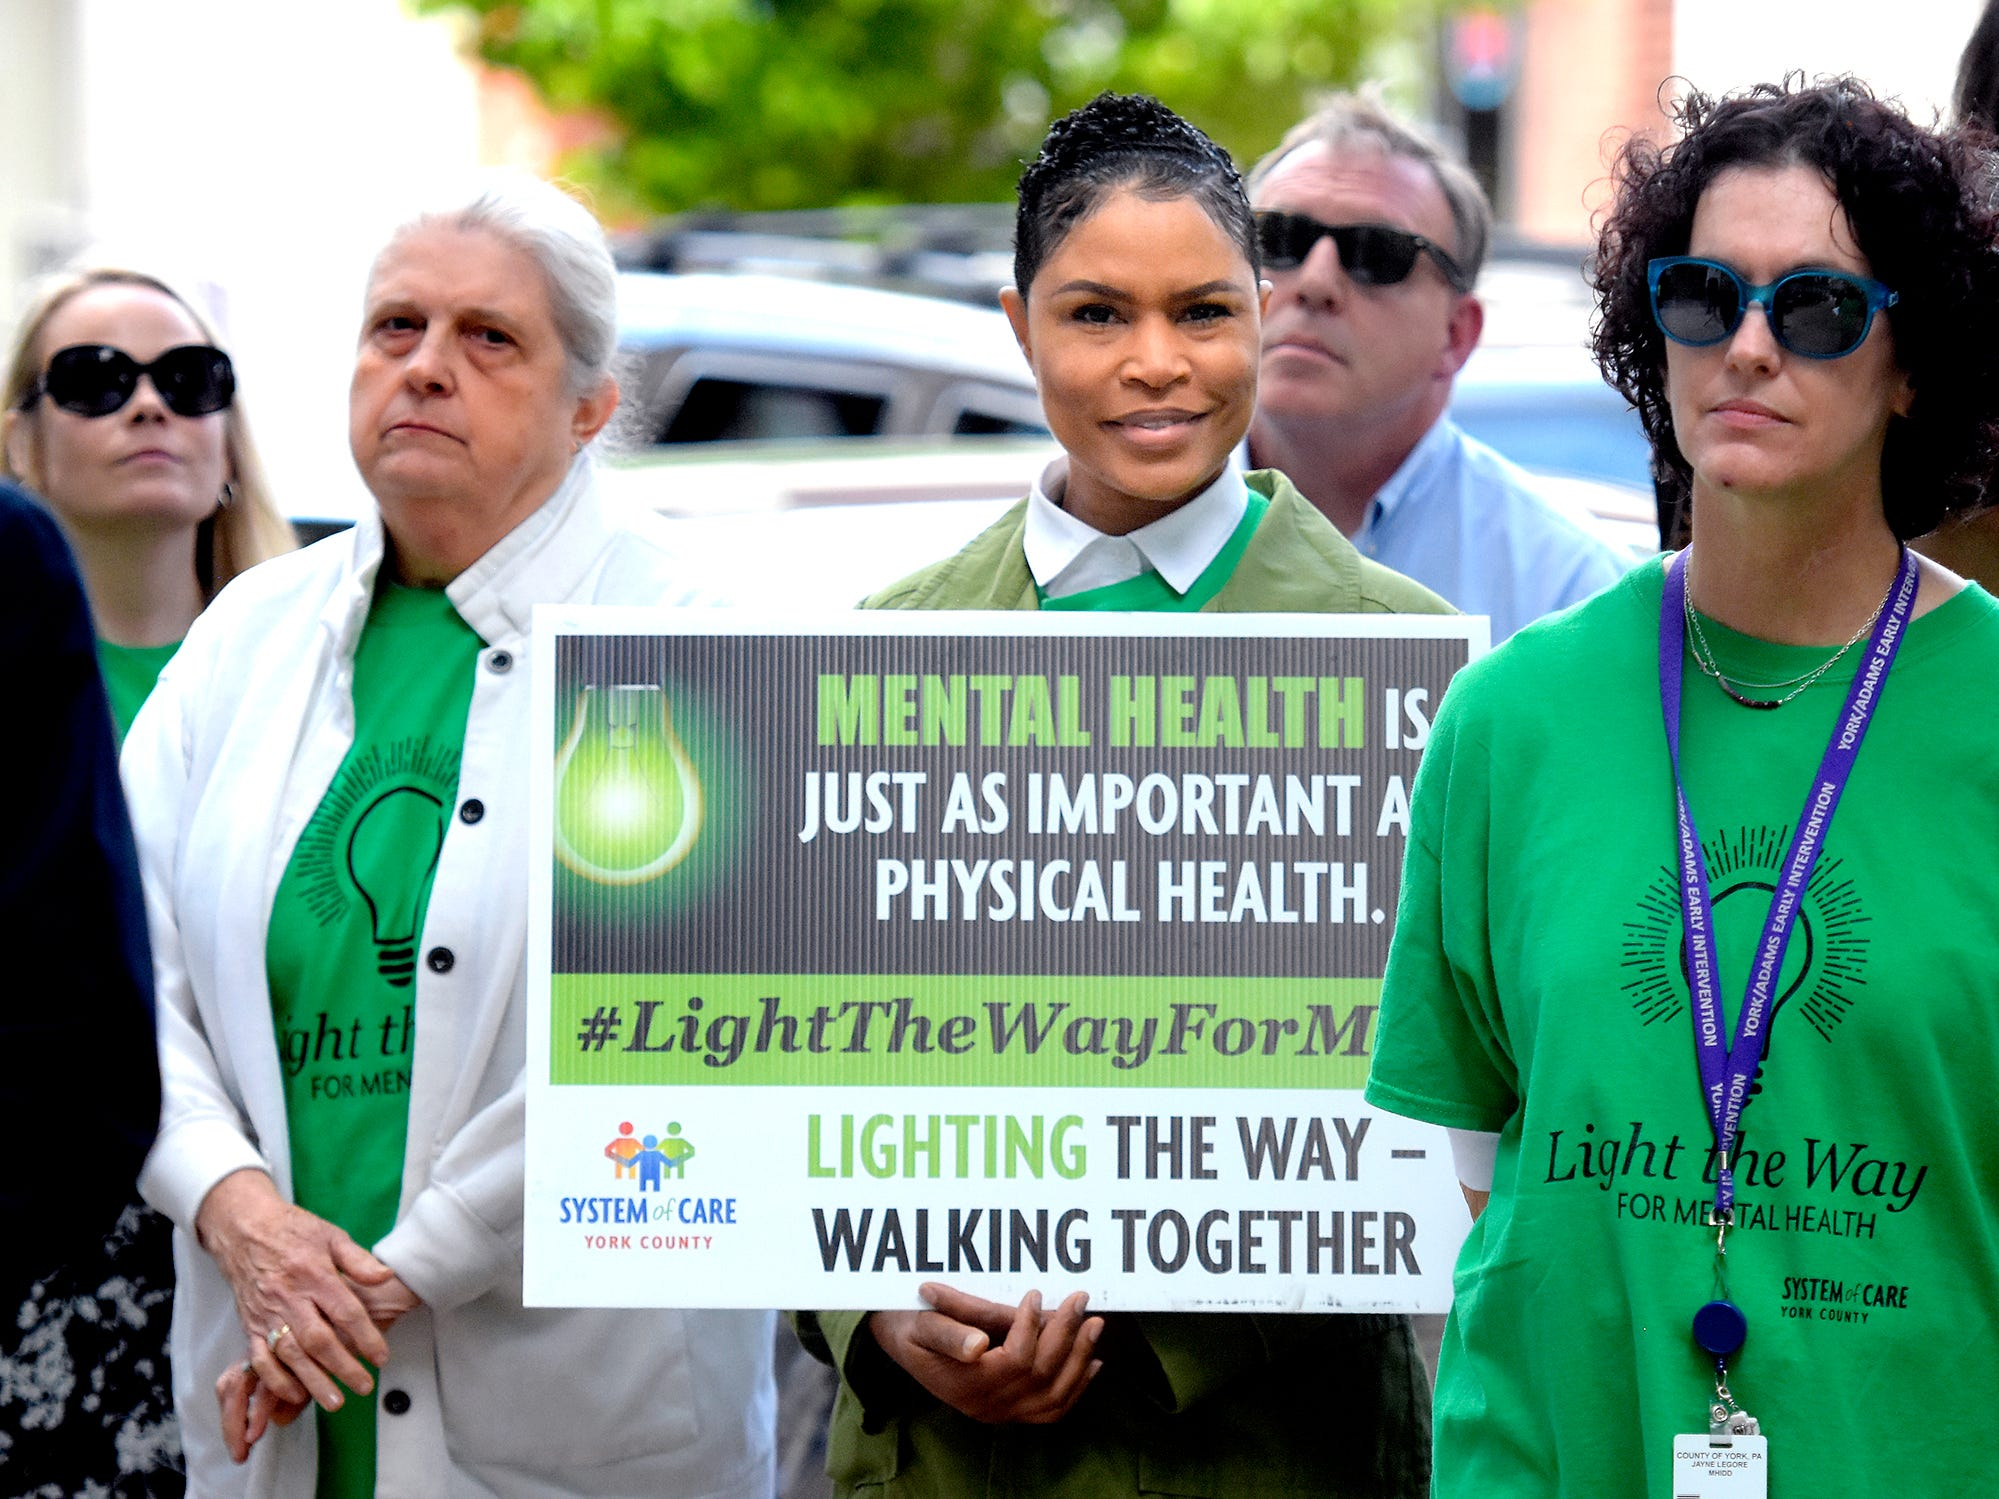 Supporters gather outside the York County Human Services building before the Walk To Raise Awareness About Mental Health in York City Monday, May 6, 2019. The York County System of Care in collaboration with York County Human Services sponsored the walk during Mental Health Awareness Month. Area business and organizations will be displaying green lighting through May 12th to show support. Bill Kalina photo